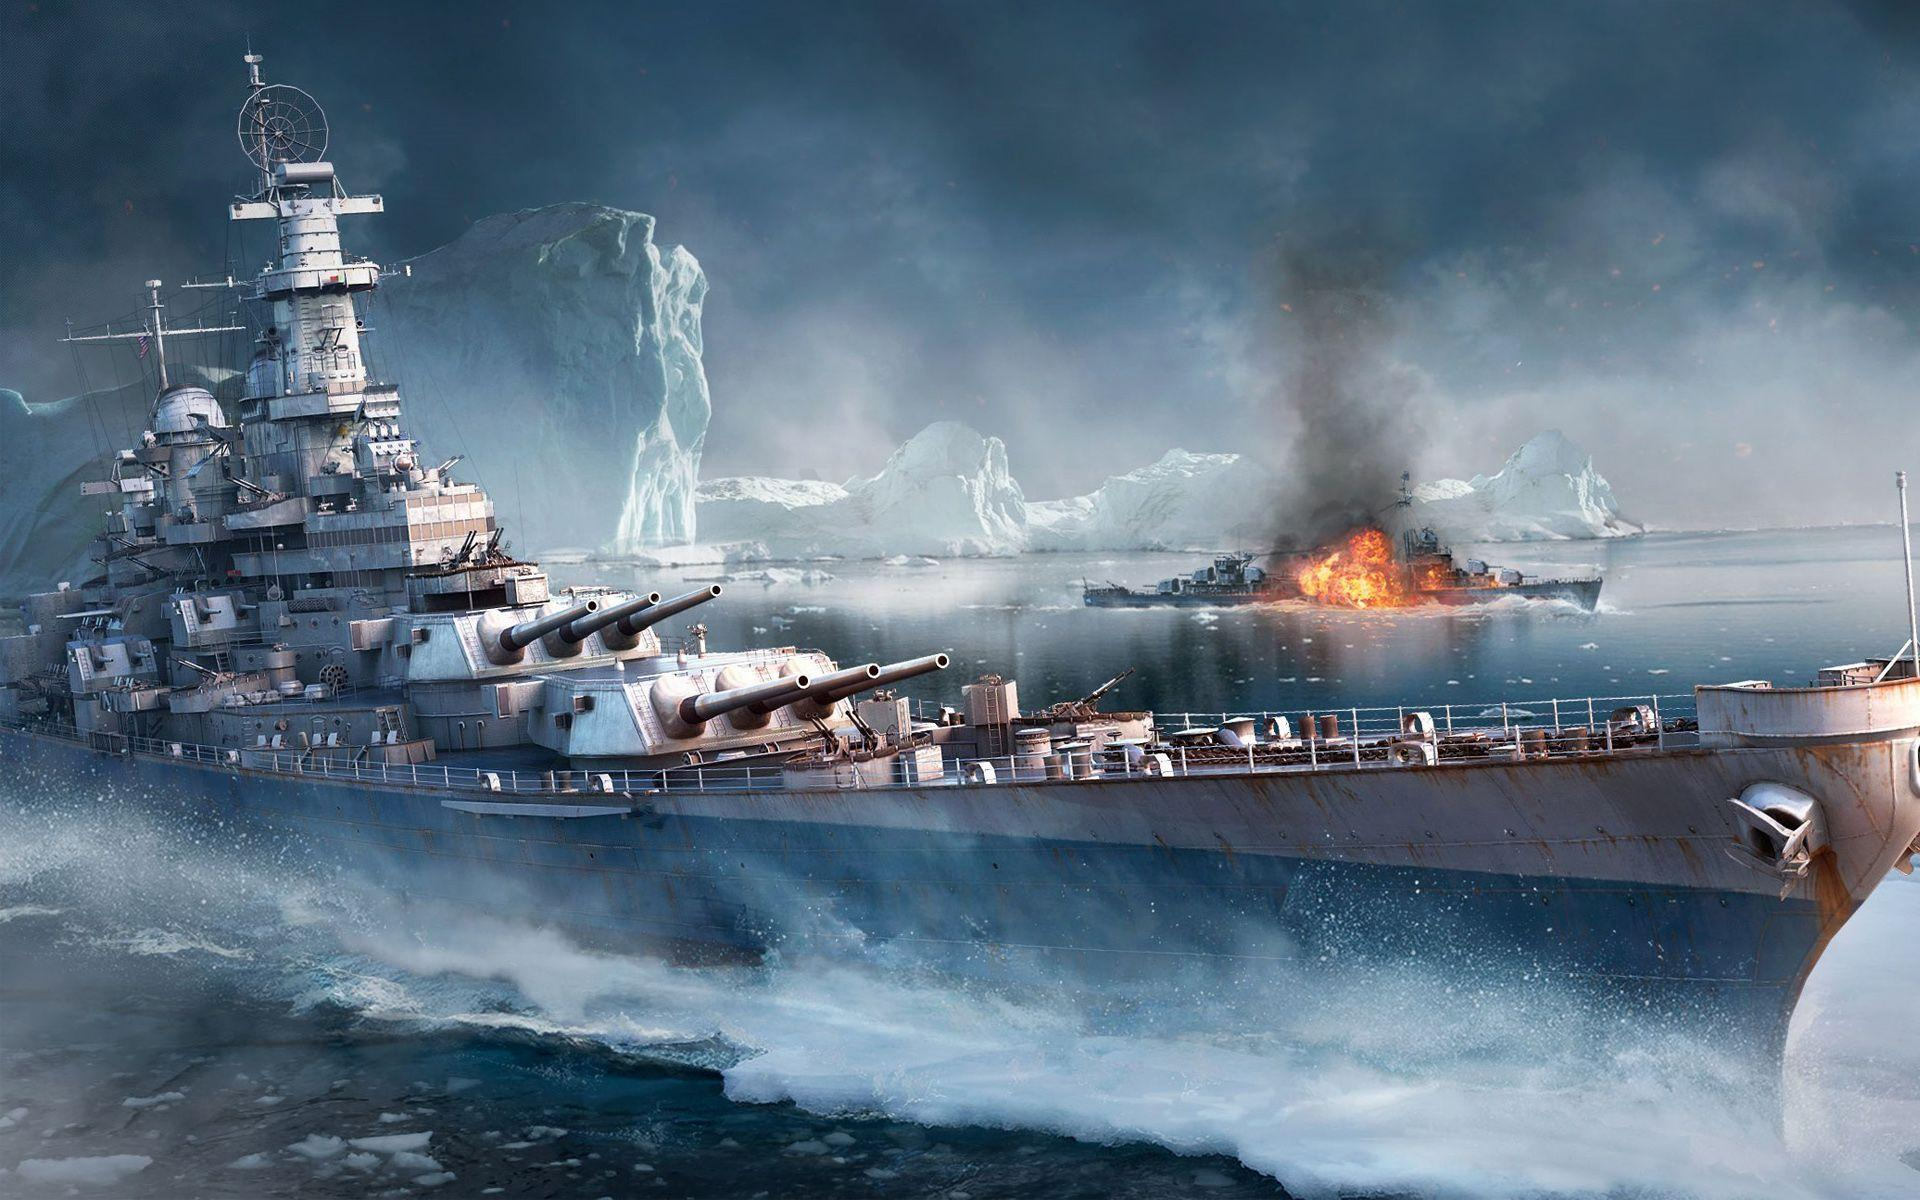 World Of Warships Wallpapers, High Quality Images of World Of ...